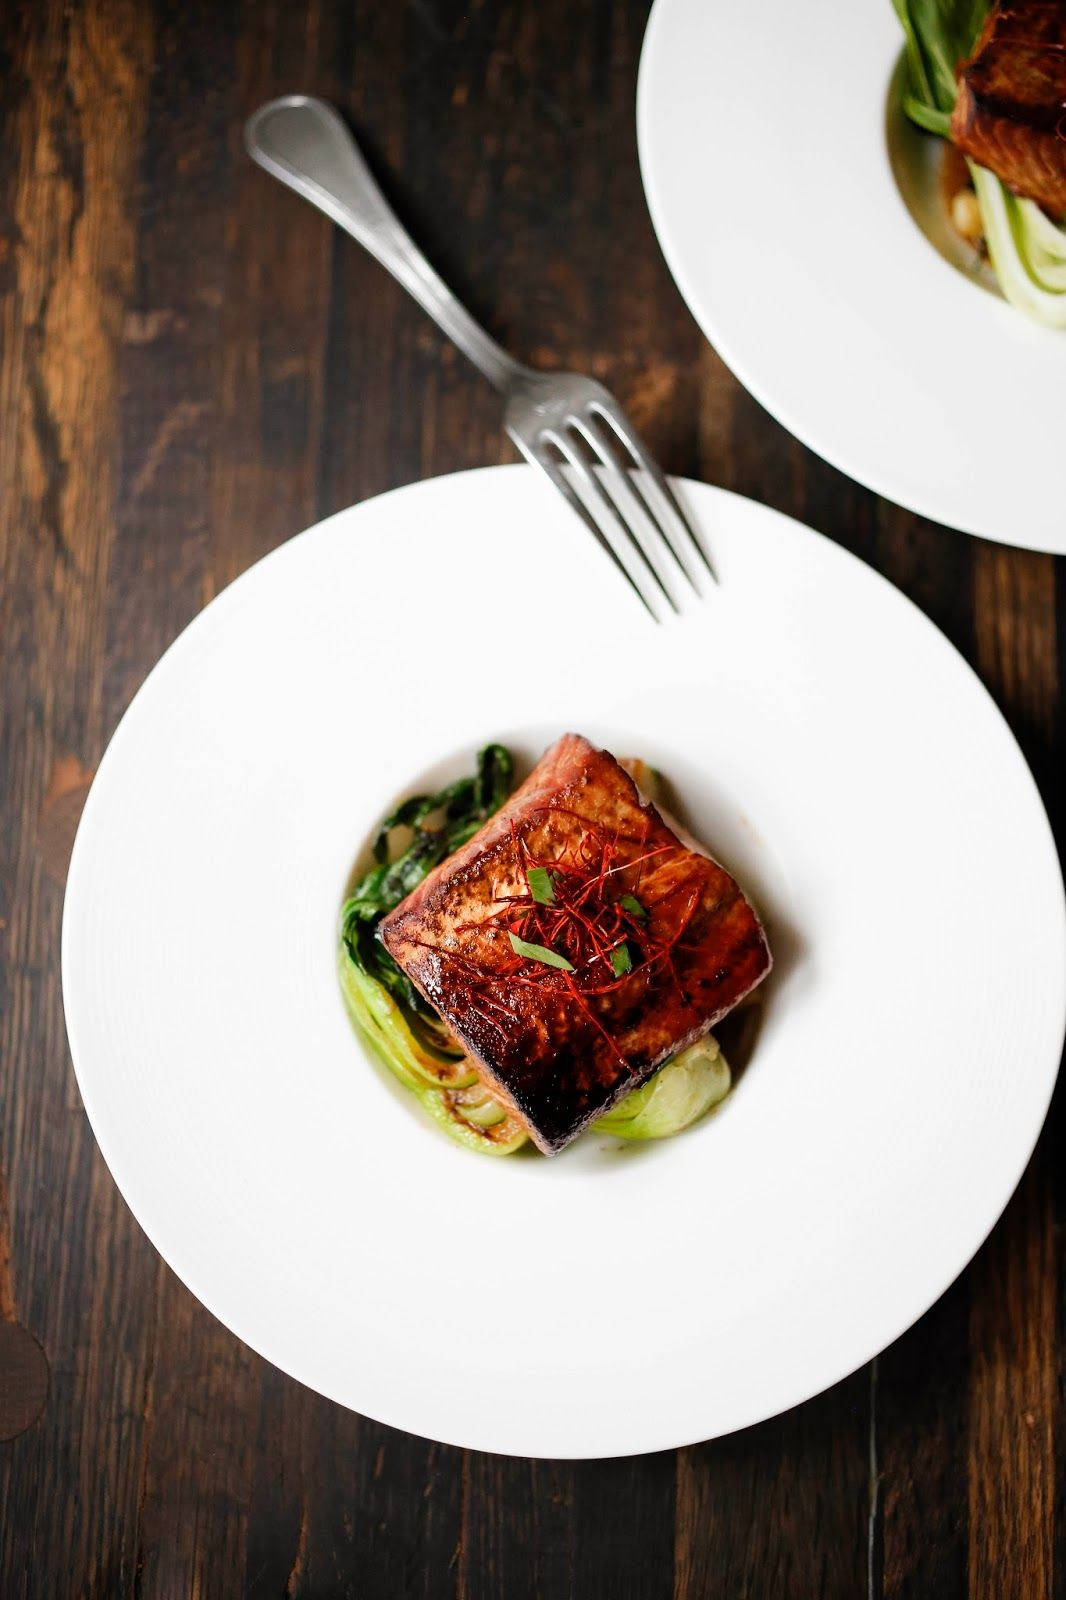 Feasting at Home : Tea-Smoked Five Spice Salmon